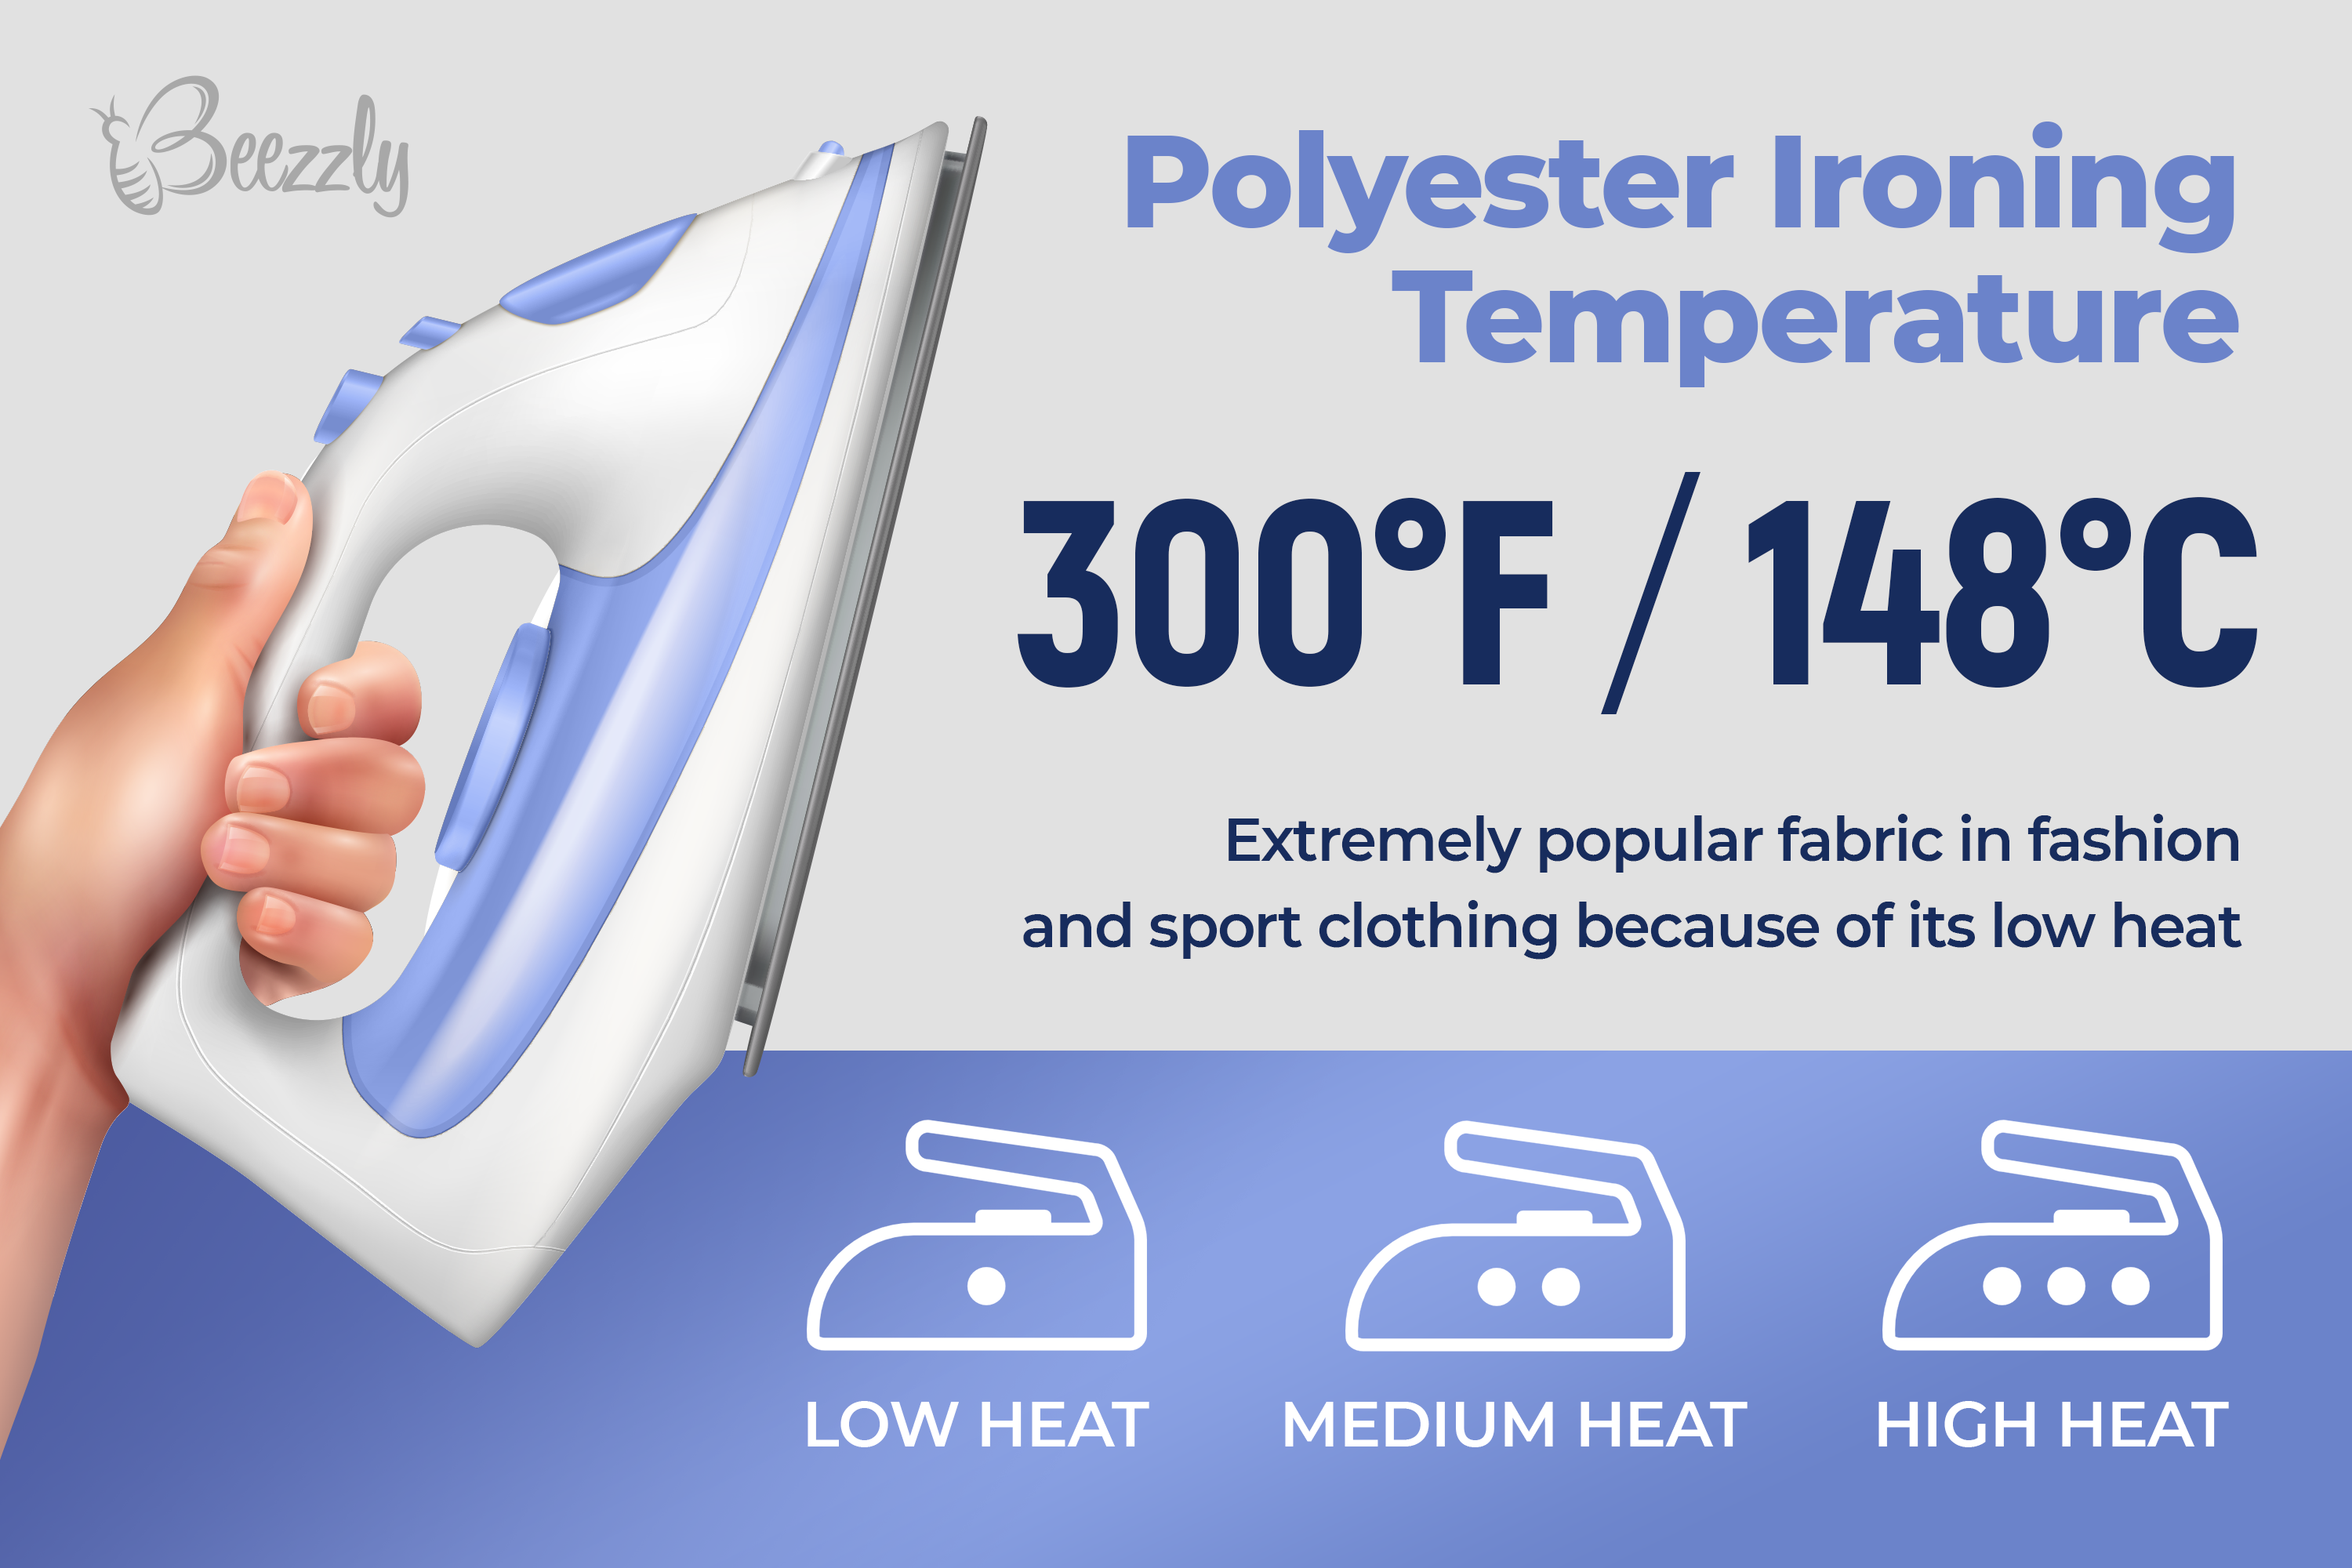 Polyester Ironing Temperature